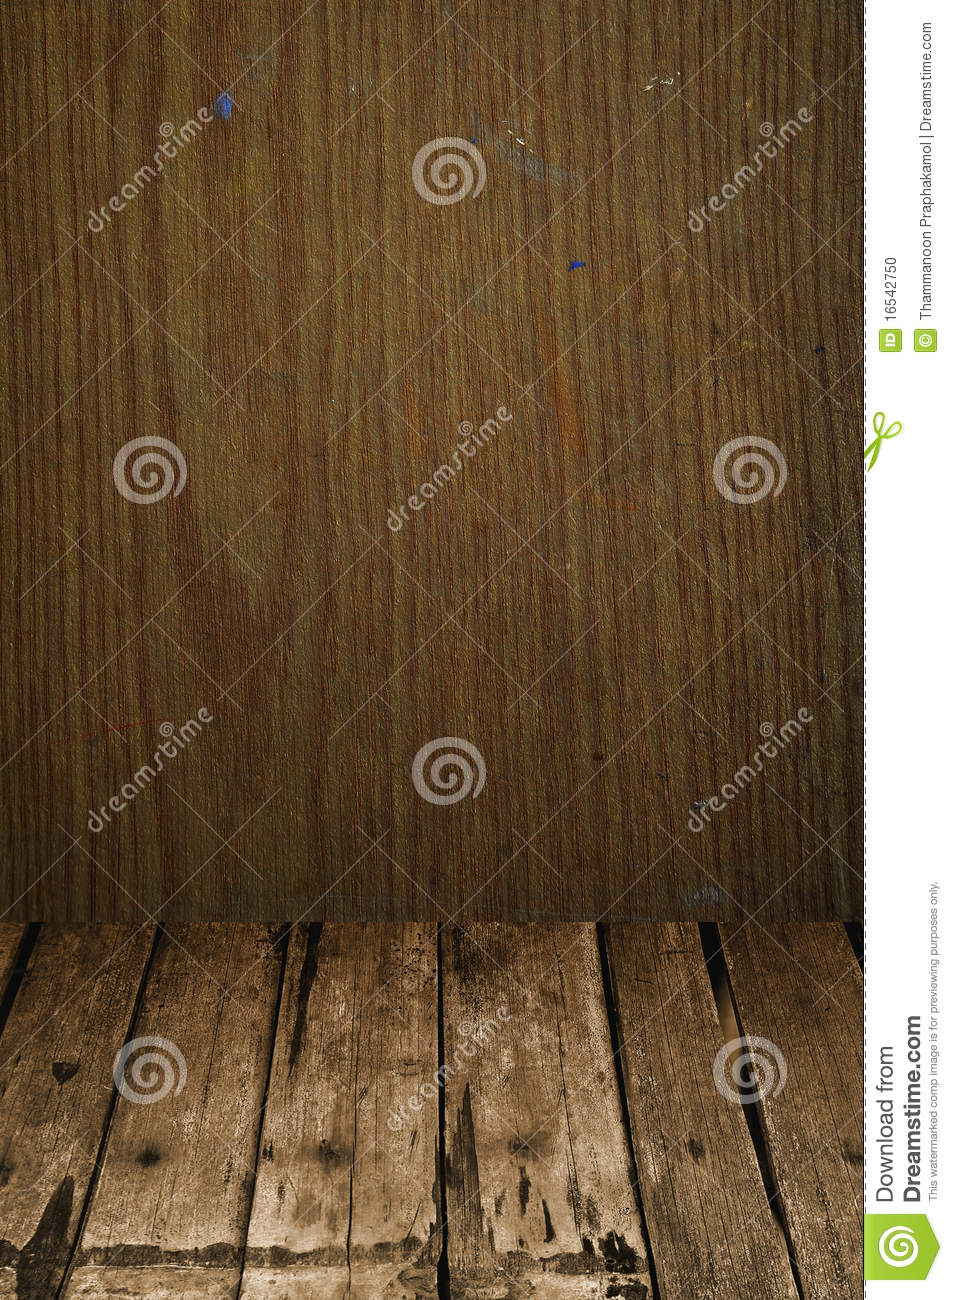 vieux papier peint en bois de texture photo stock image 16542750. Black Bedroom Furniture Sets. Home Design Ideas